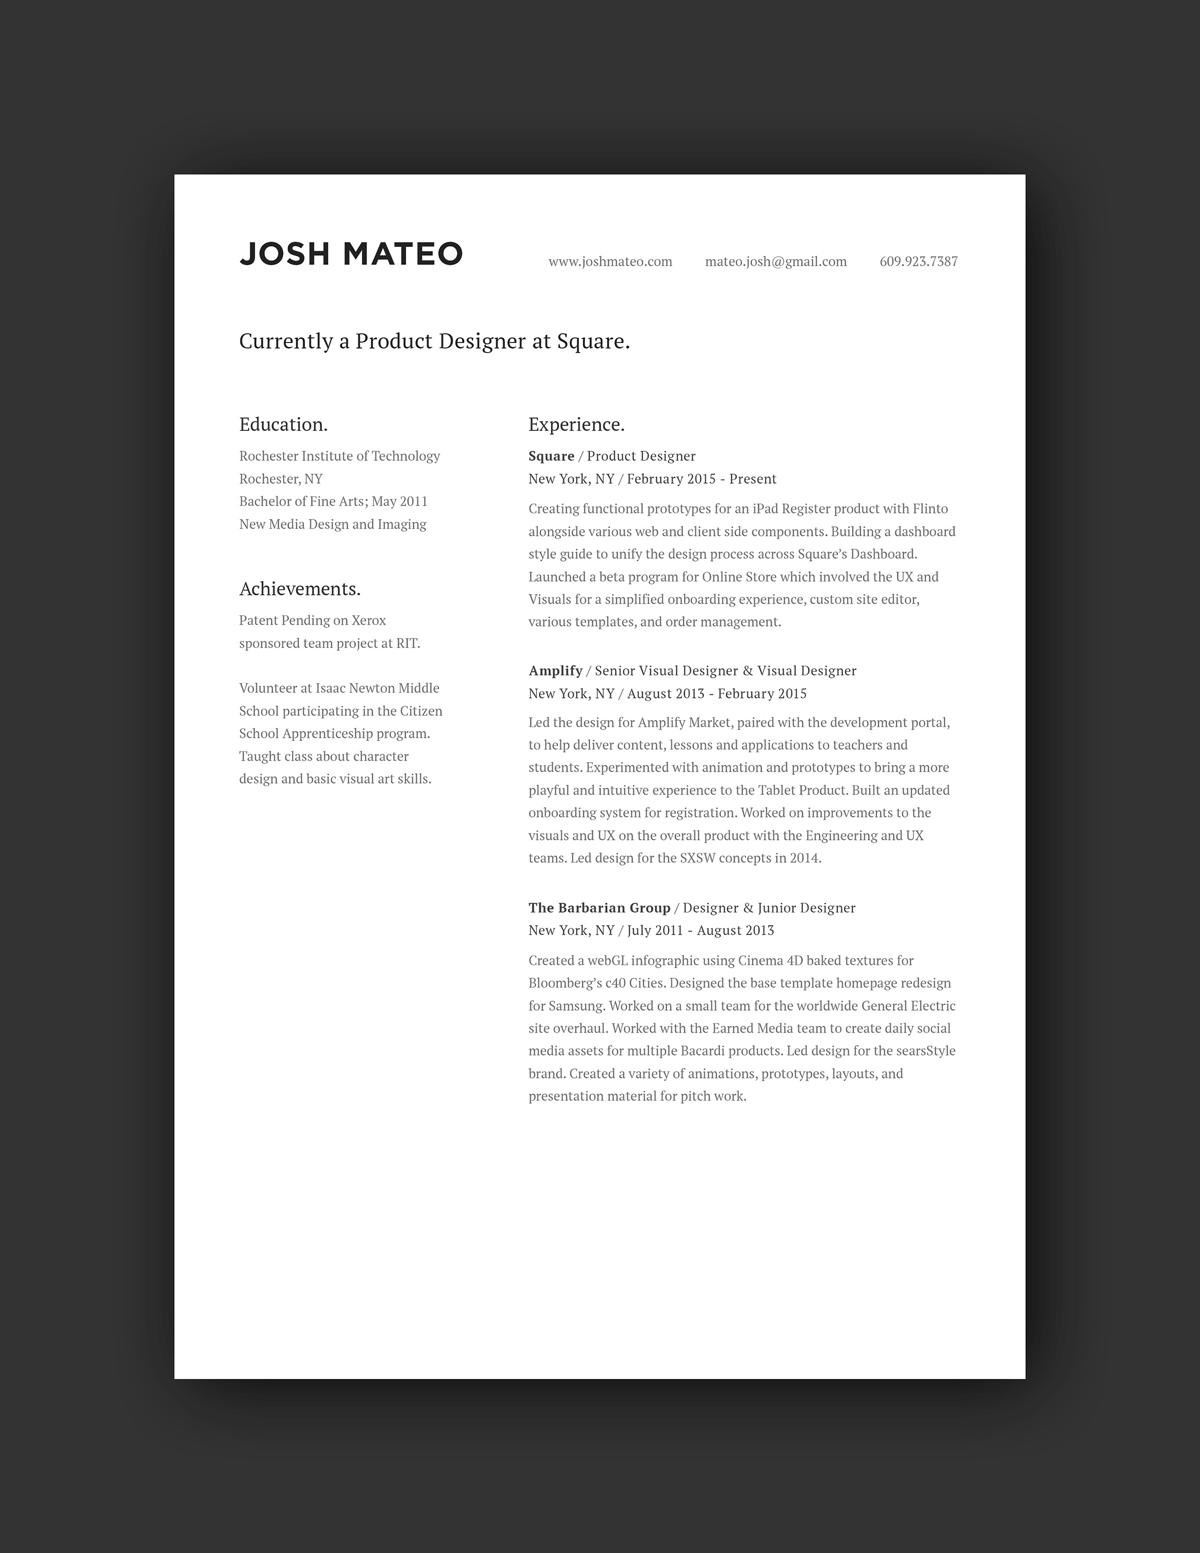 21 Inspiring Ux Designer Resumes And Why They Work Resume Design Graphic Design Resume Ux Design